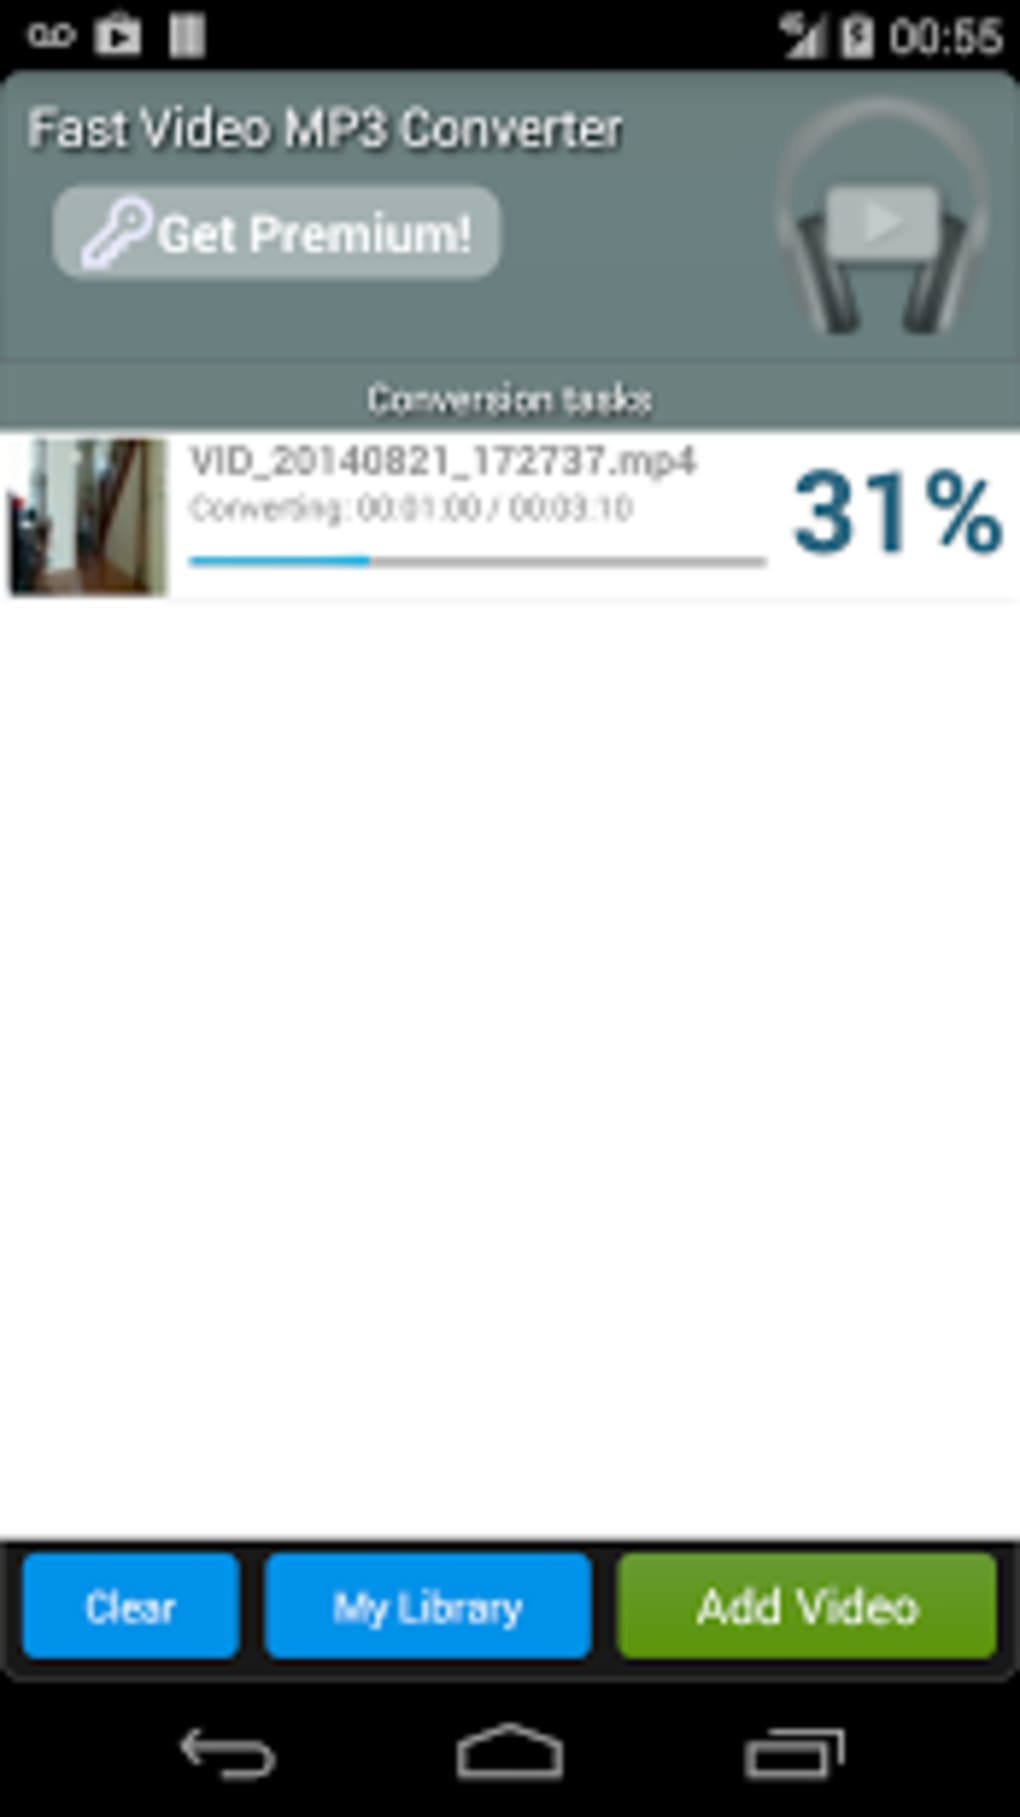 Fast MP3 Video Converter APK for Android - Download